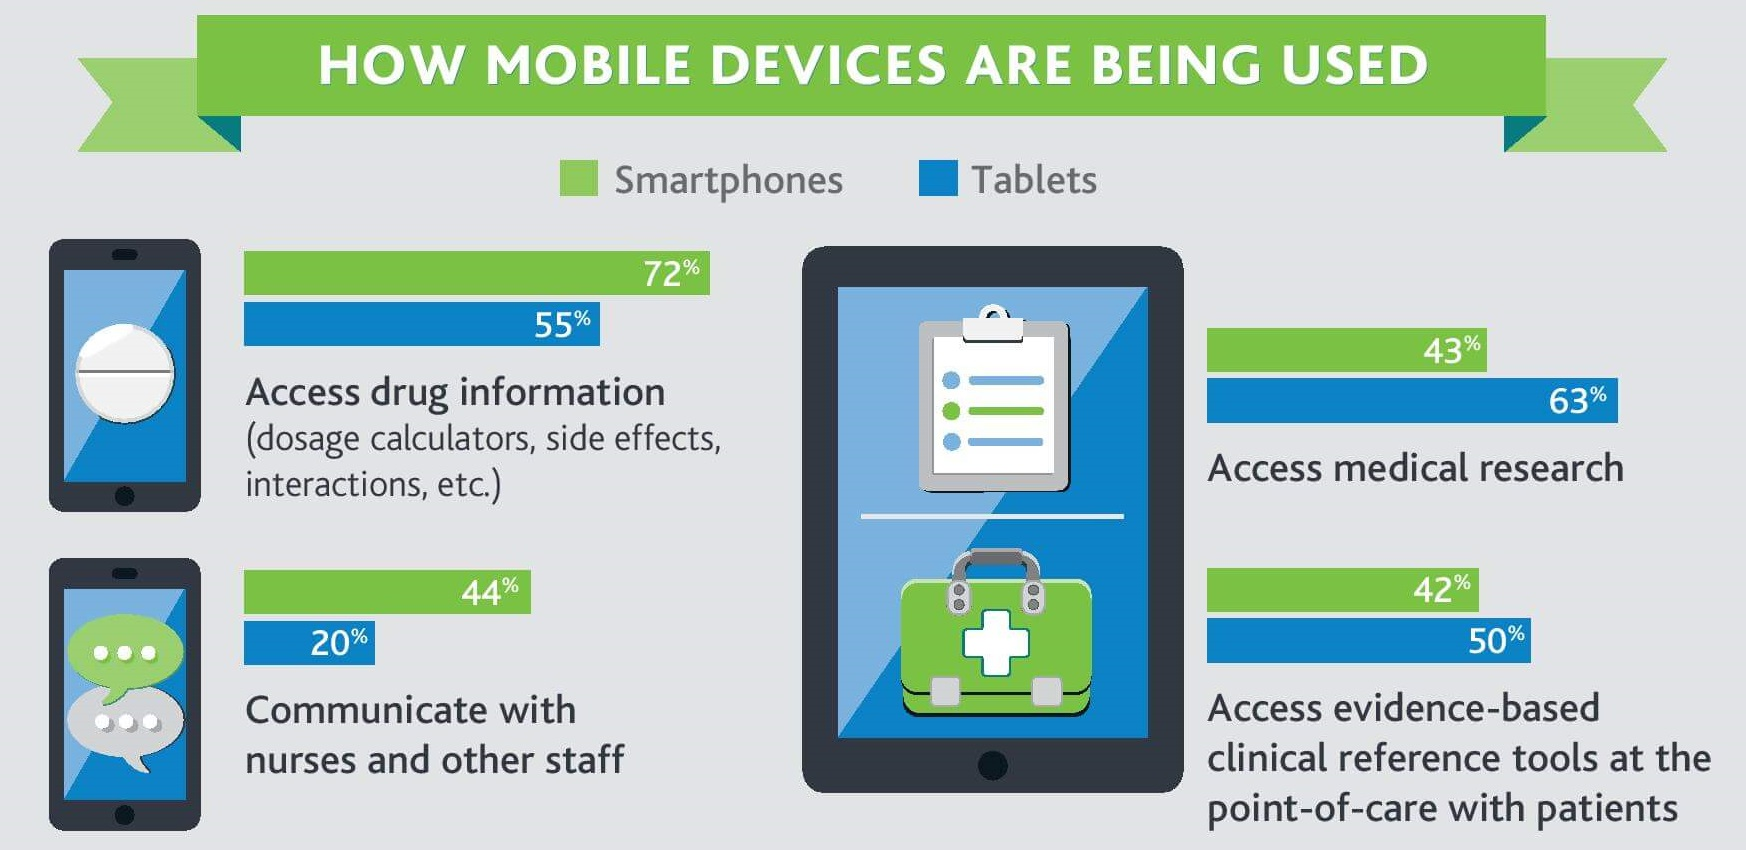 Physician-Mobile-Information-Sources-getreferralmd.jpg